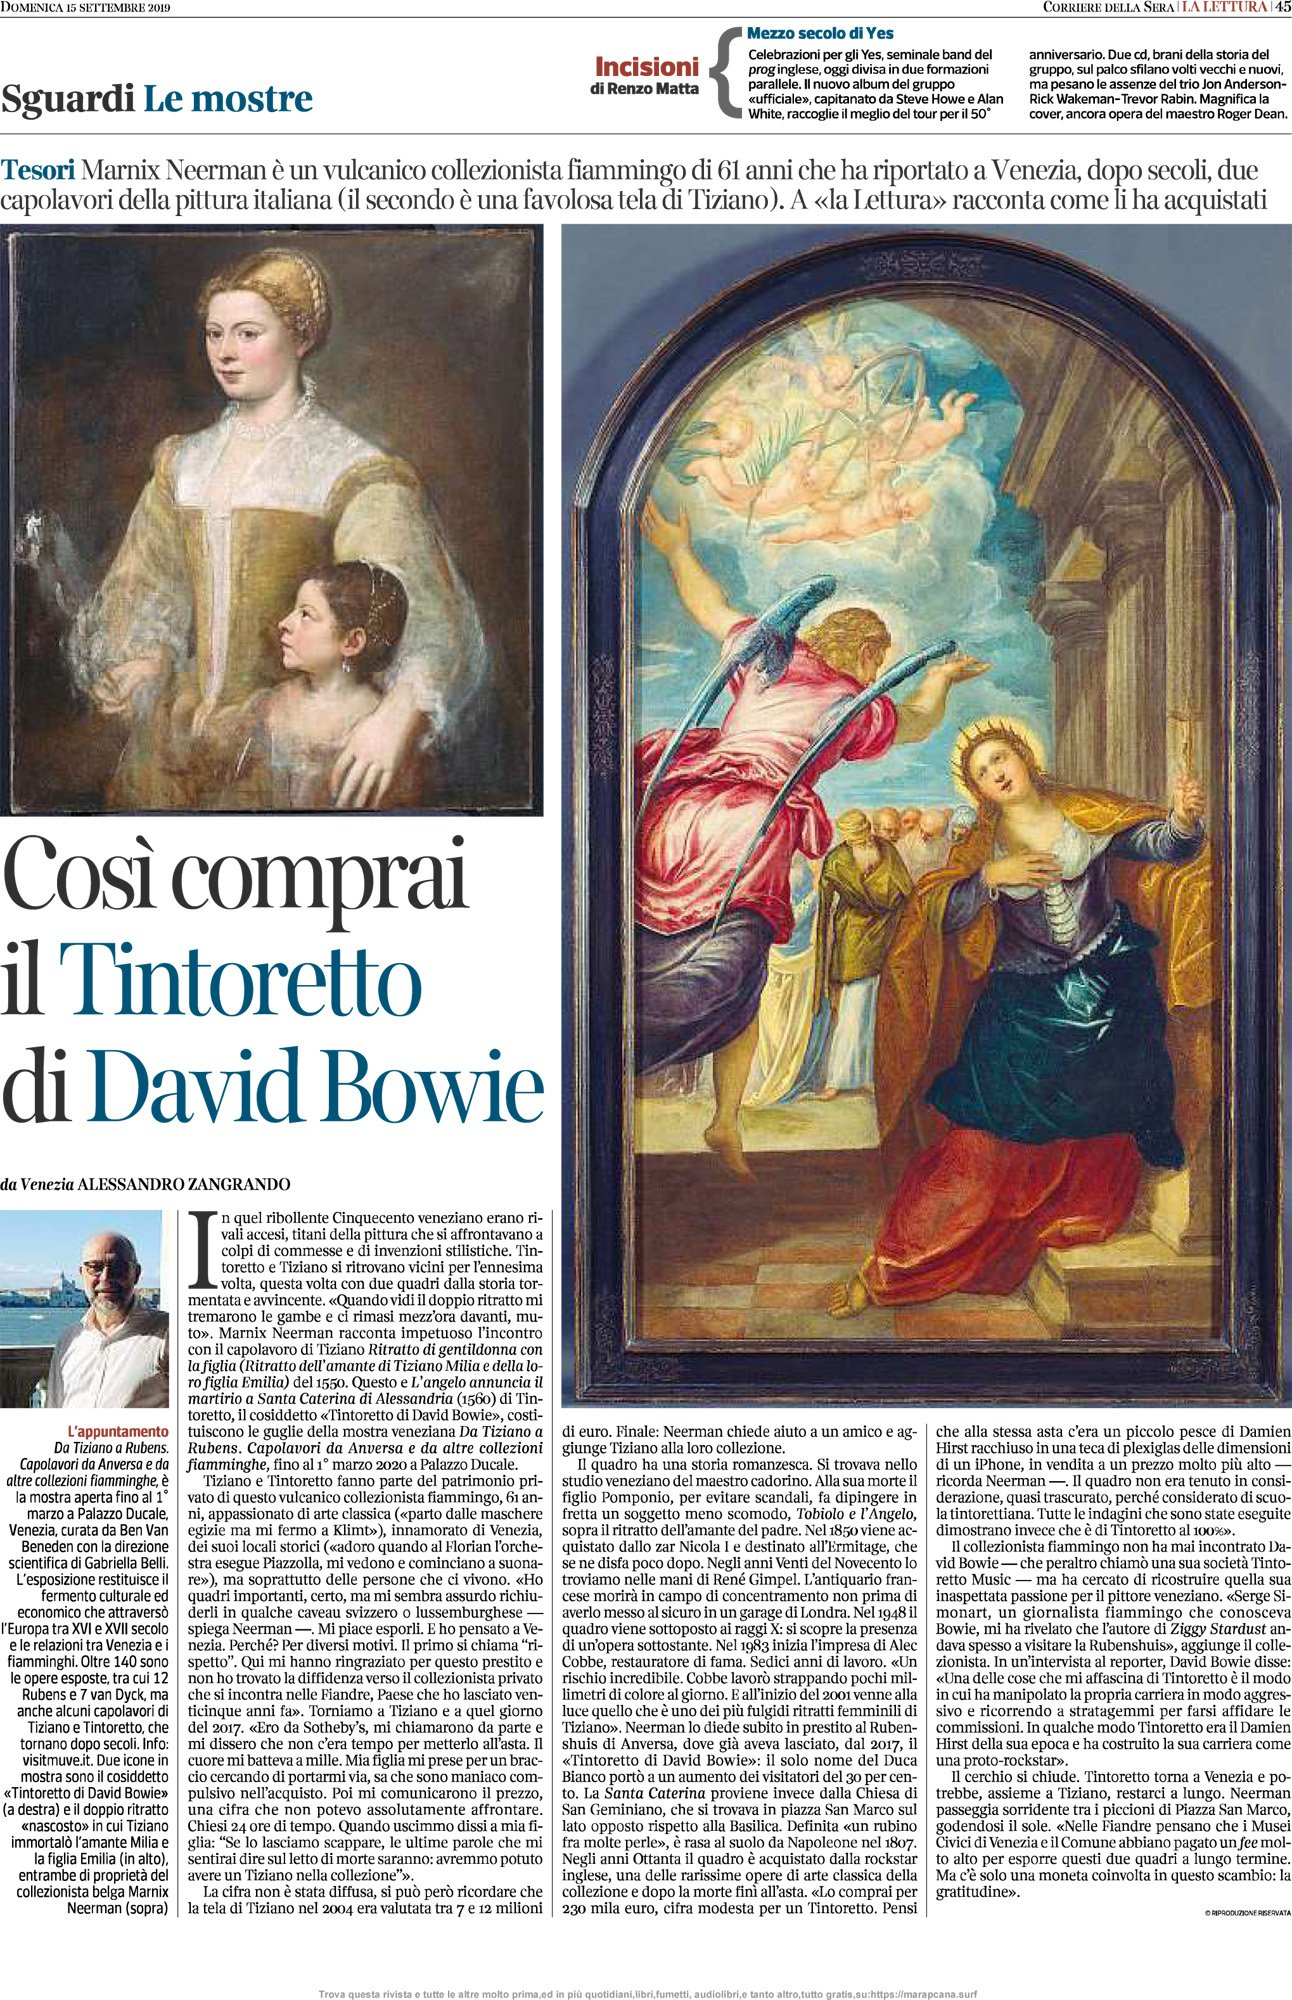 Bowie Tintoretto 2019 corriere